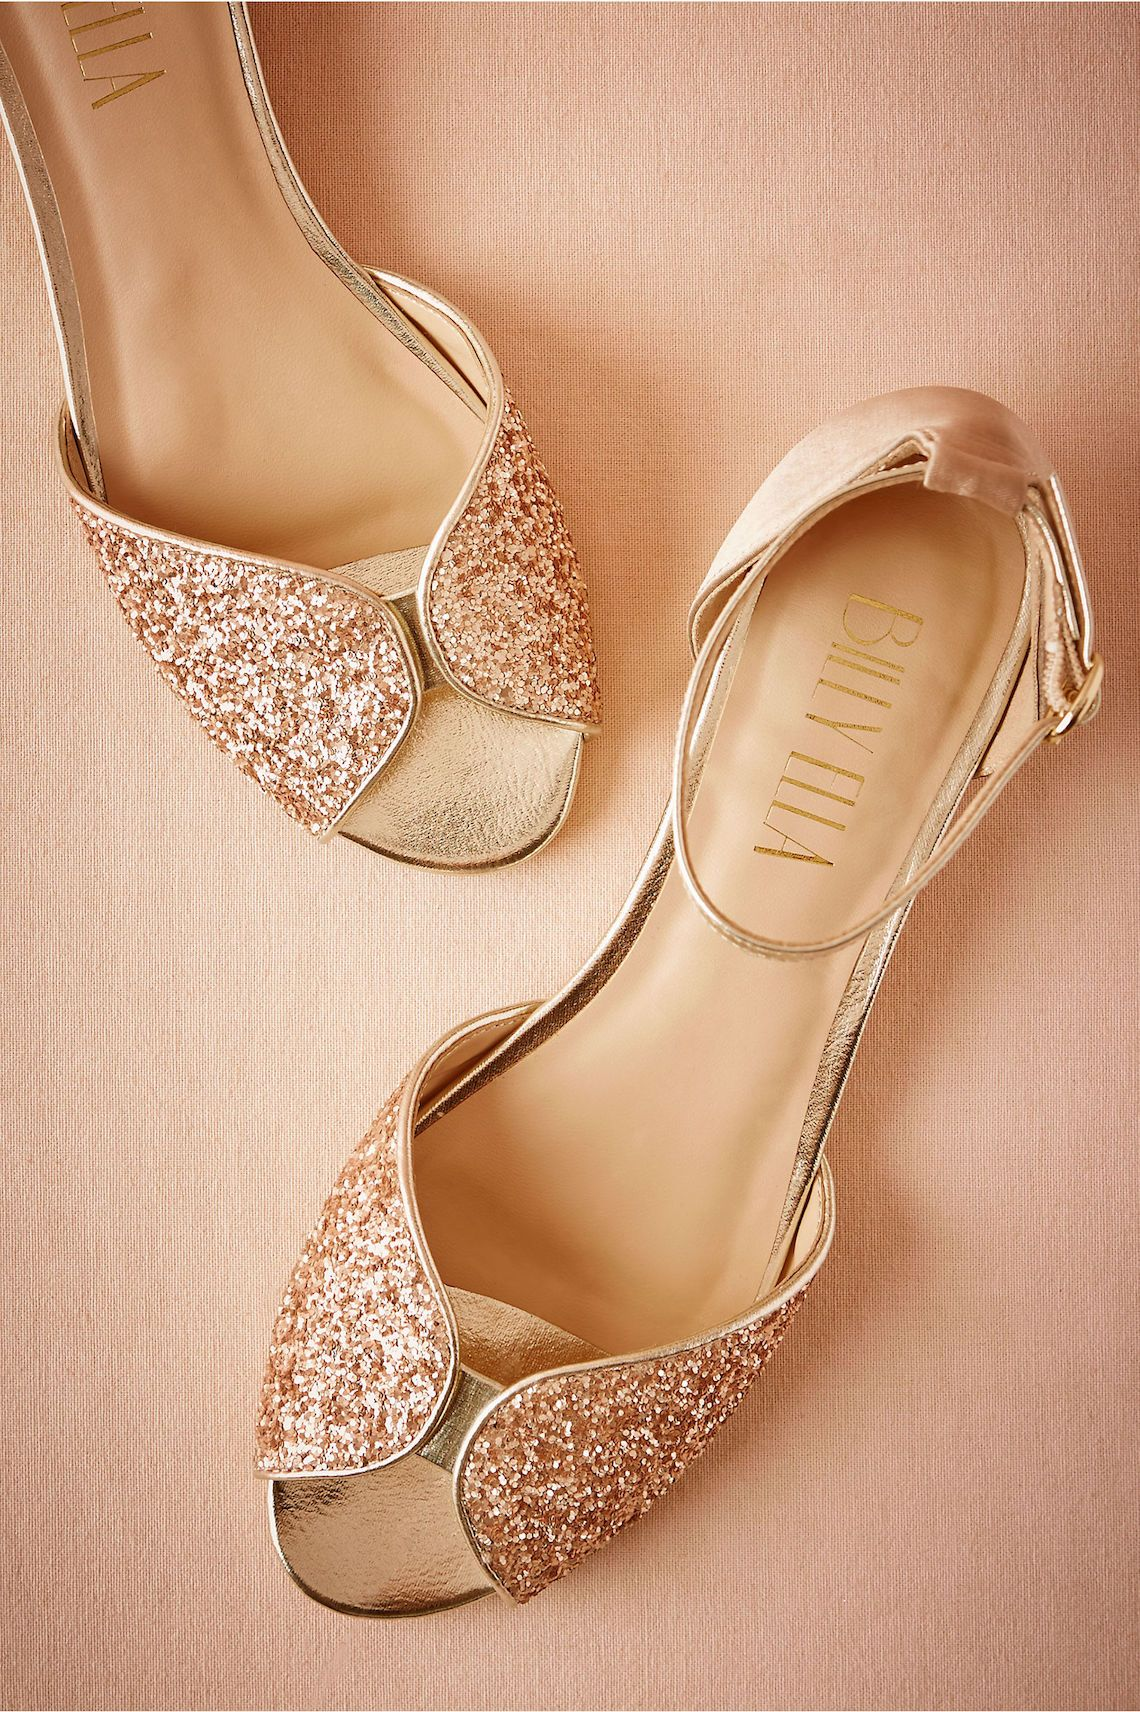 994b4b9a3 10 Flat Wedding Shoes (That Are Just As Chic As Heels)